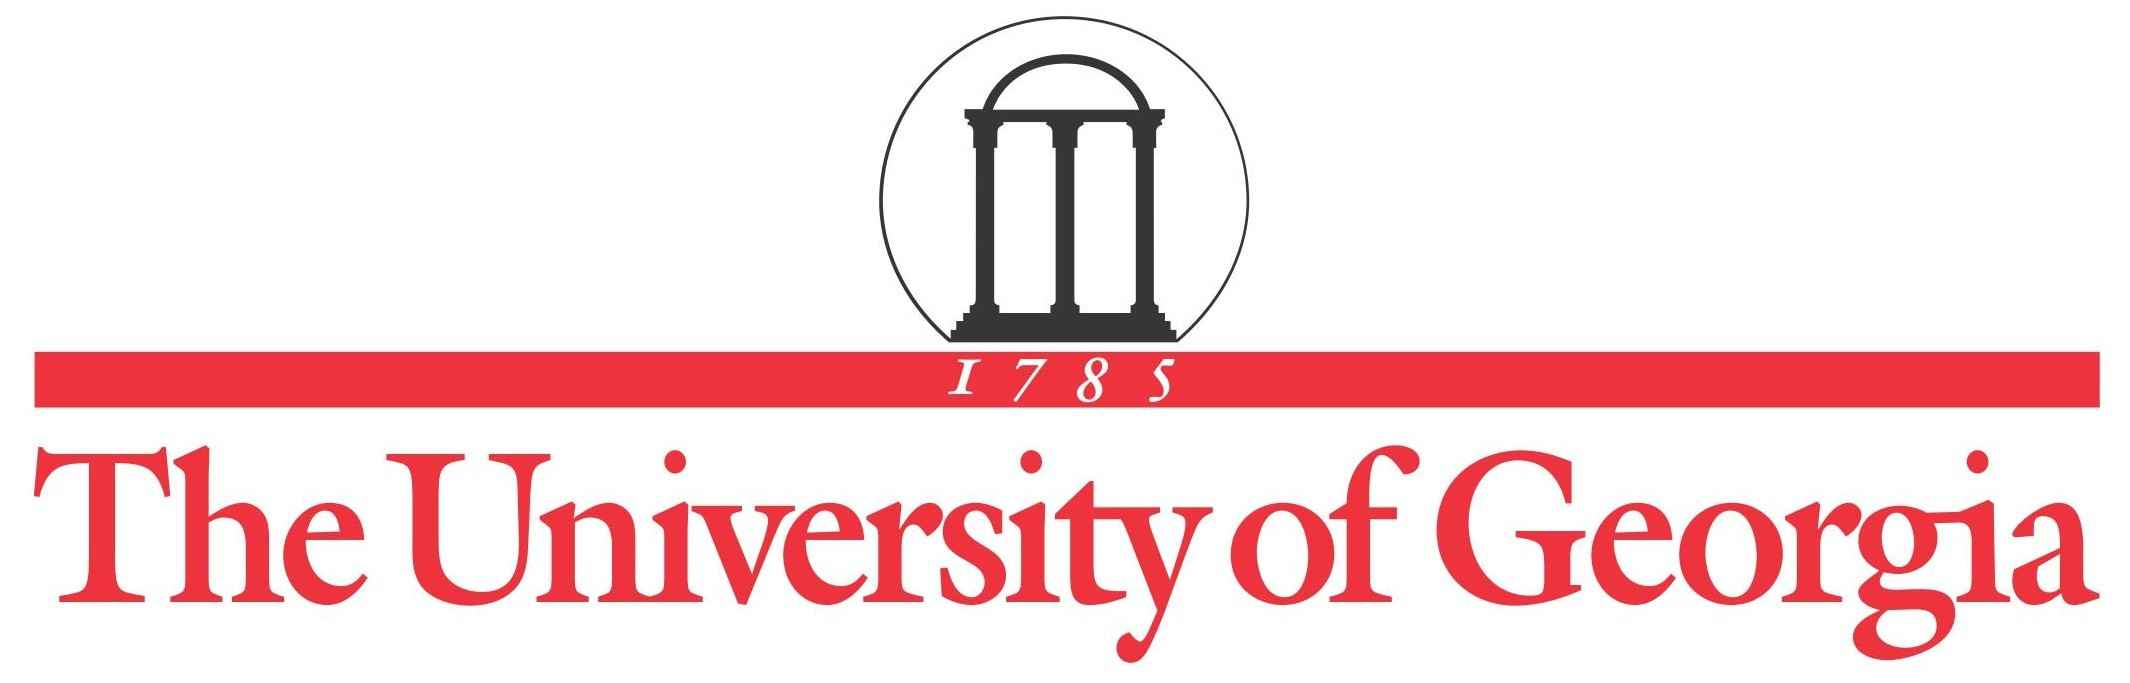 UGA_Logo_University_of_Georgia